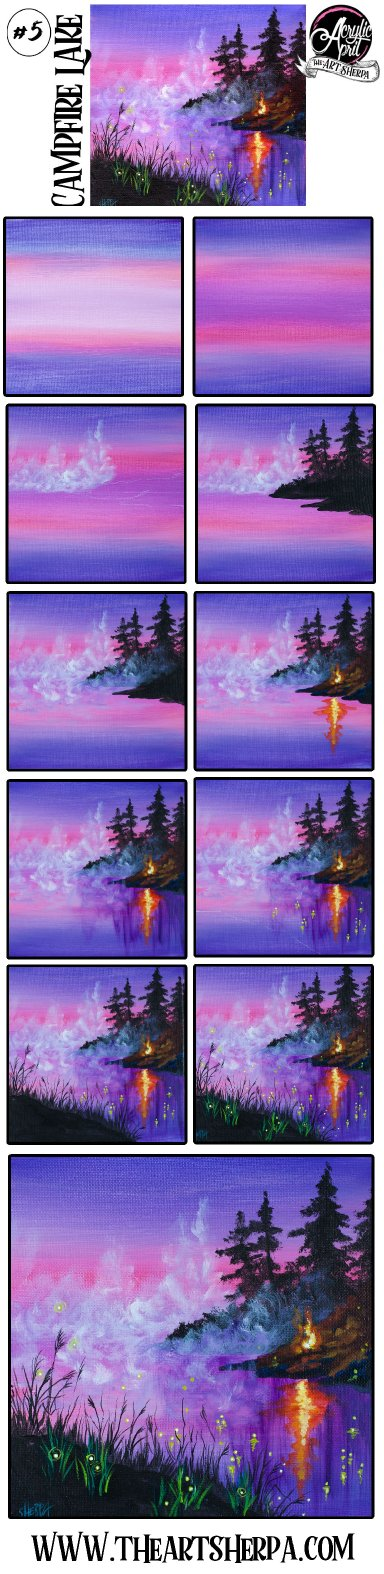 Easy Lake and Campfire  Step by step Acrylic Tutorial Day  #5 AcrylicApril2021 | TheArtSherpa